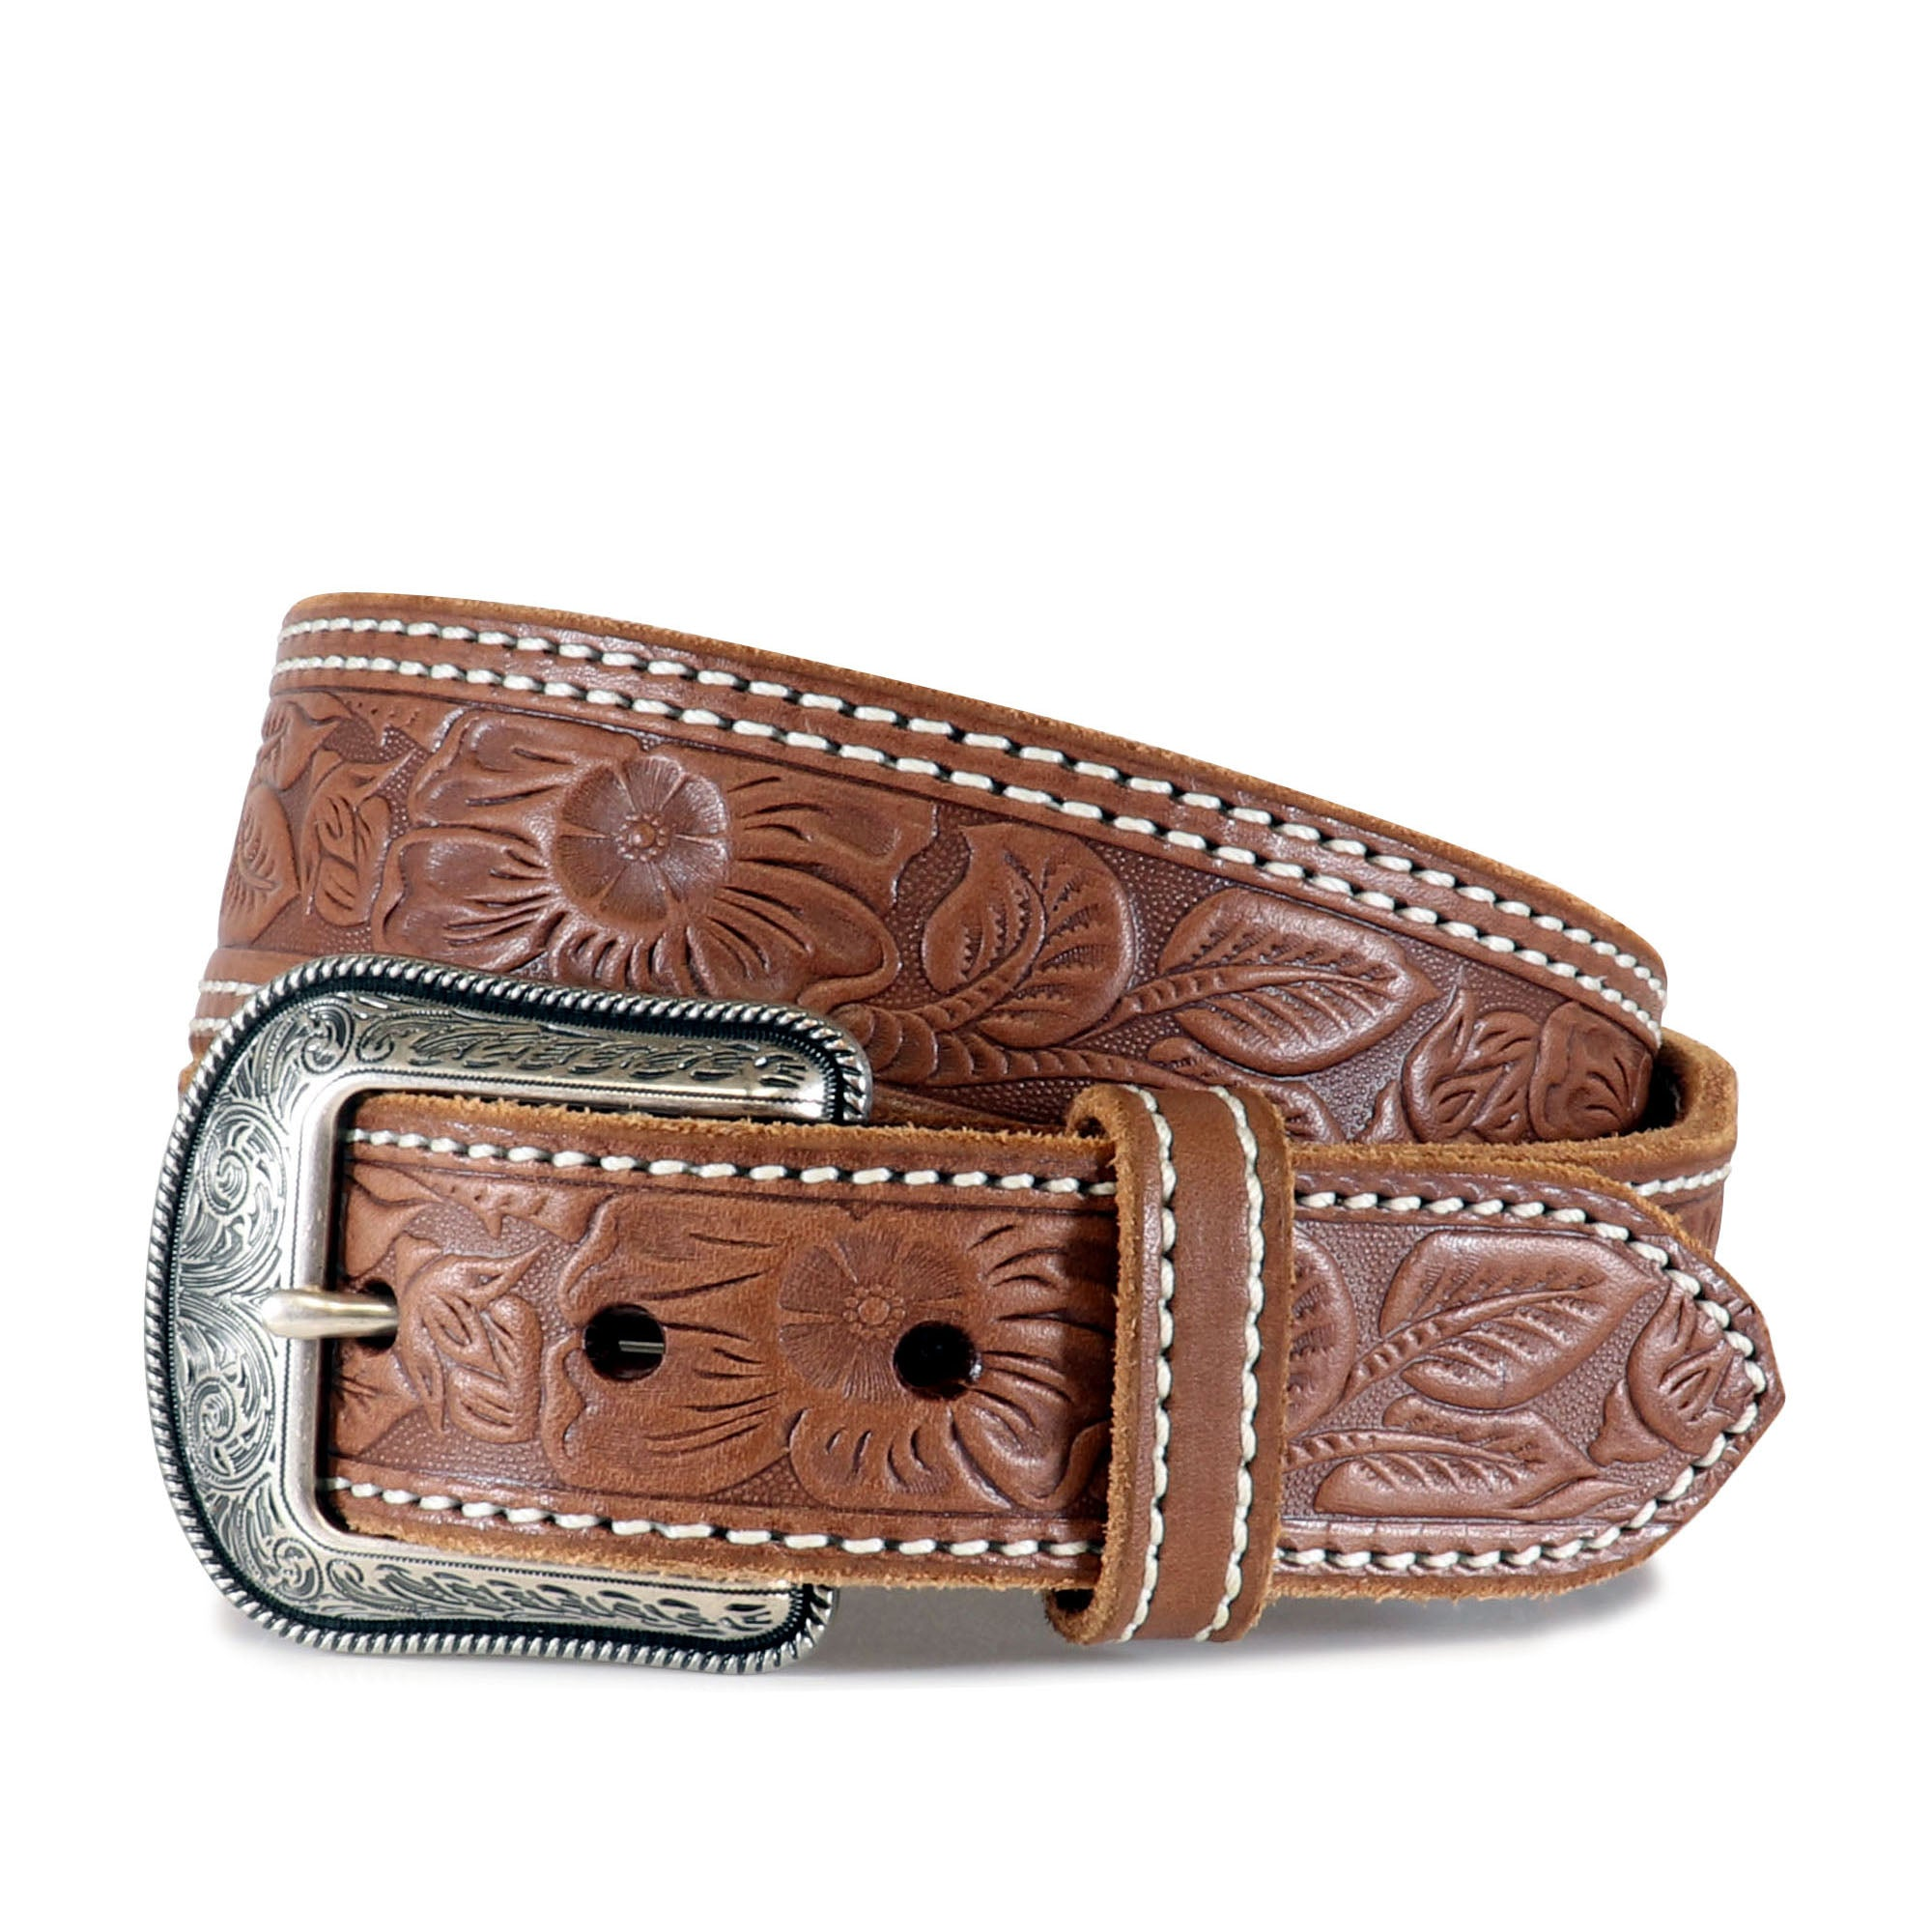 Western Belt #7511 Tapered with Classic Floral Emboss